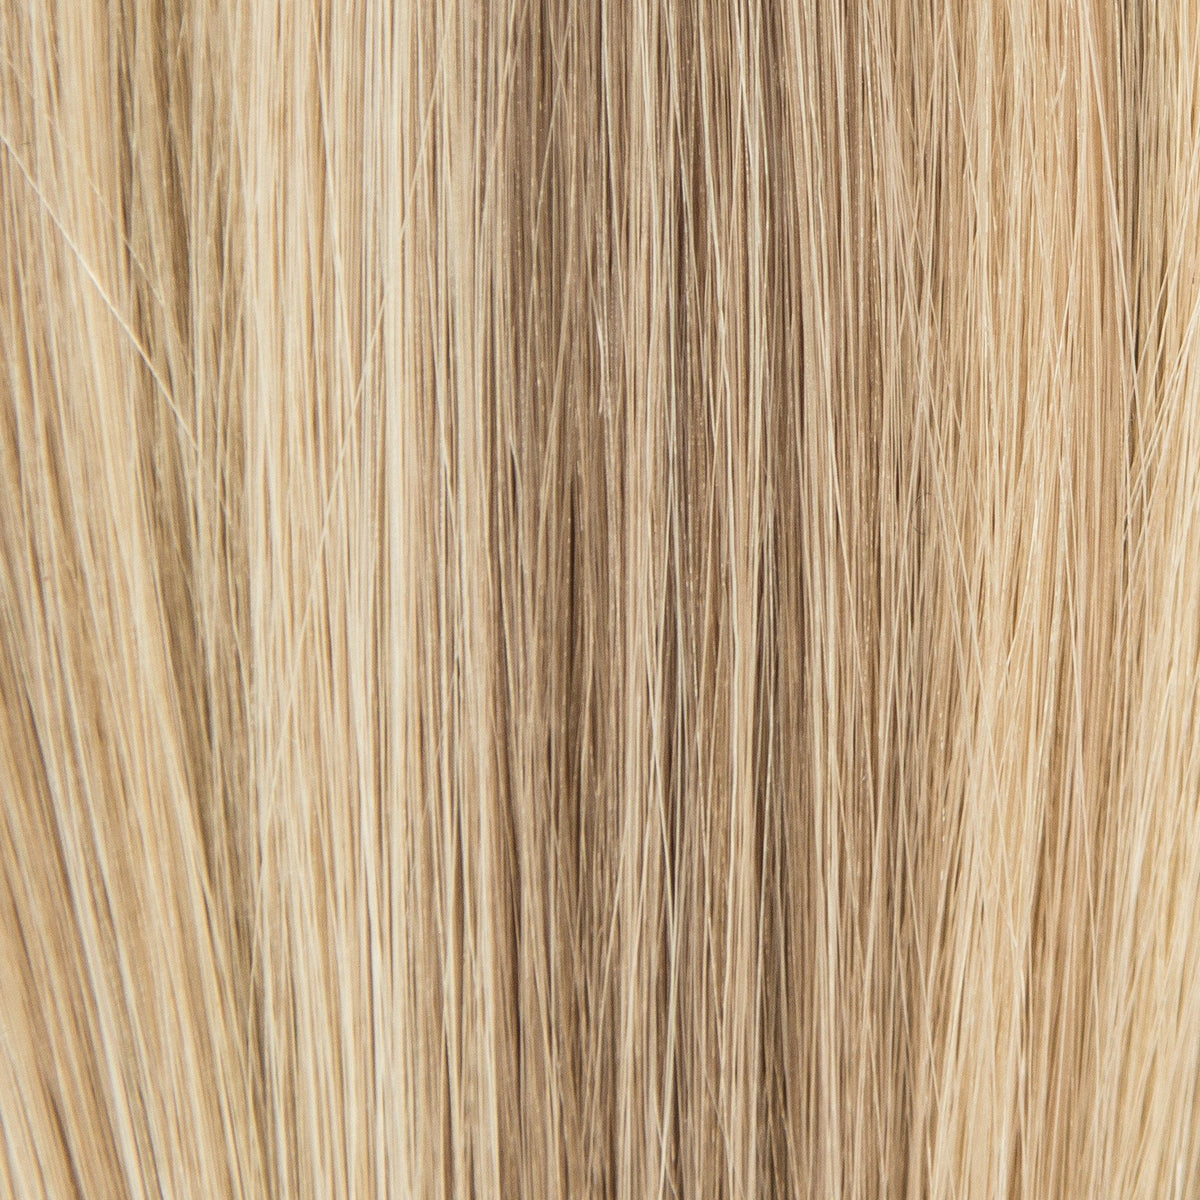 Laced Hair I-Tip Extensions Dimensional #10/16